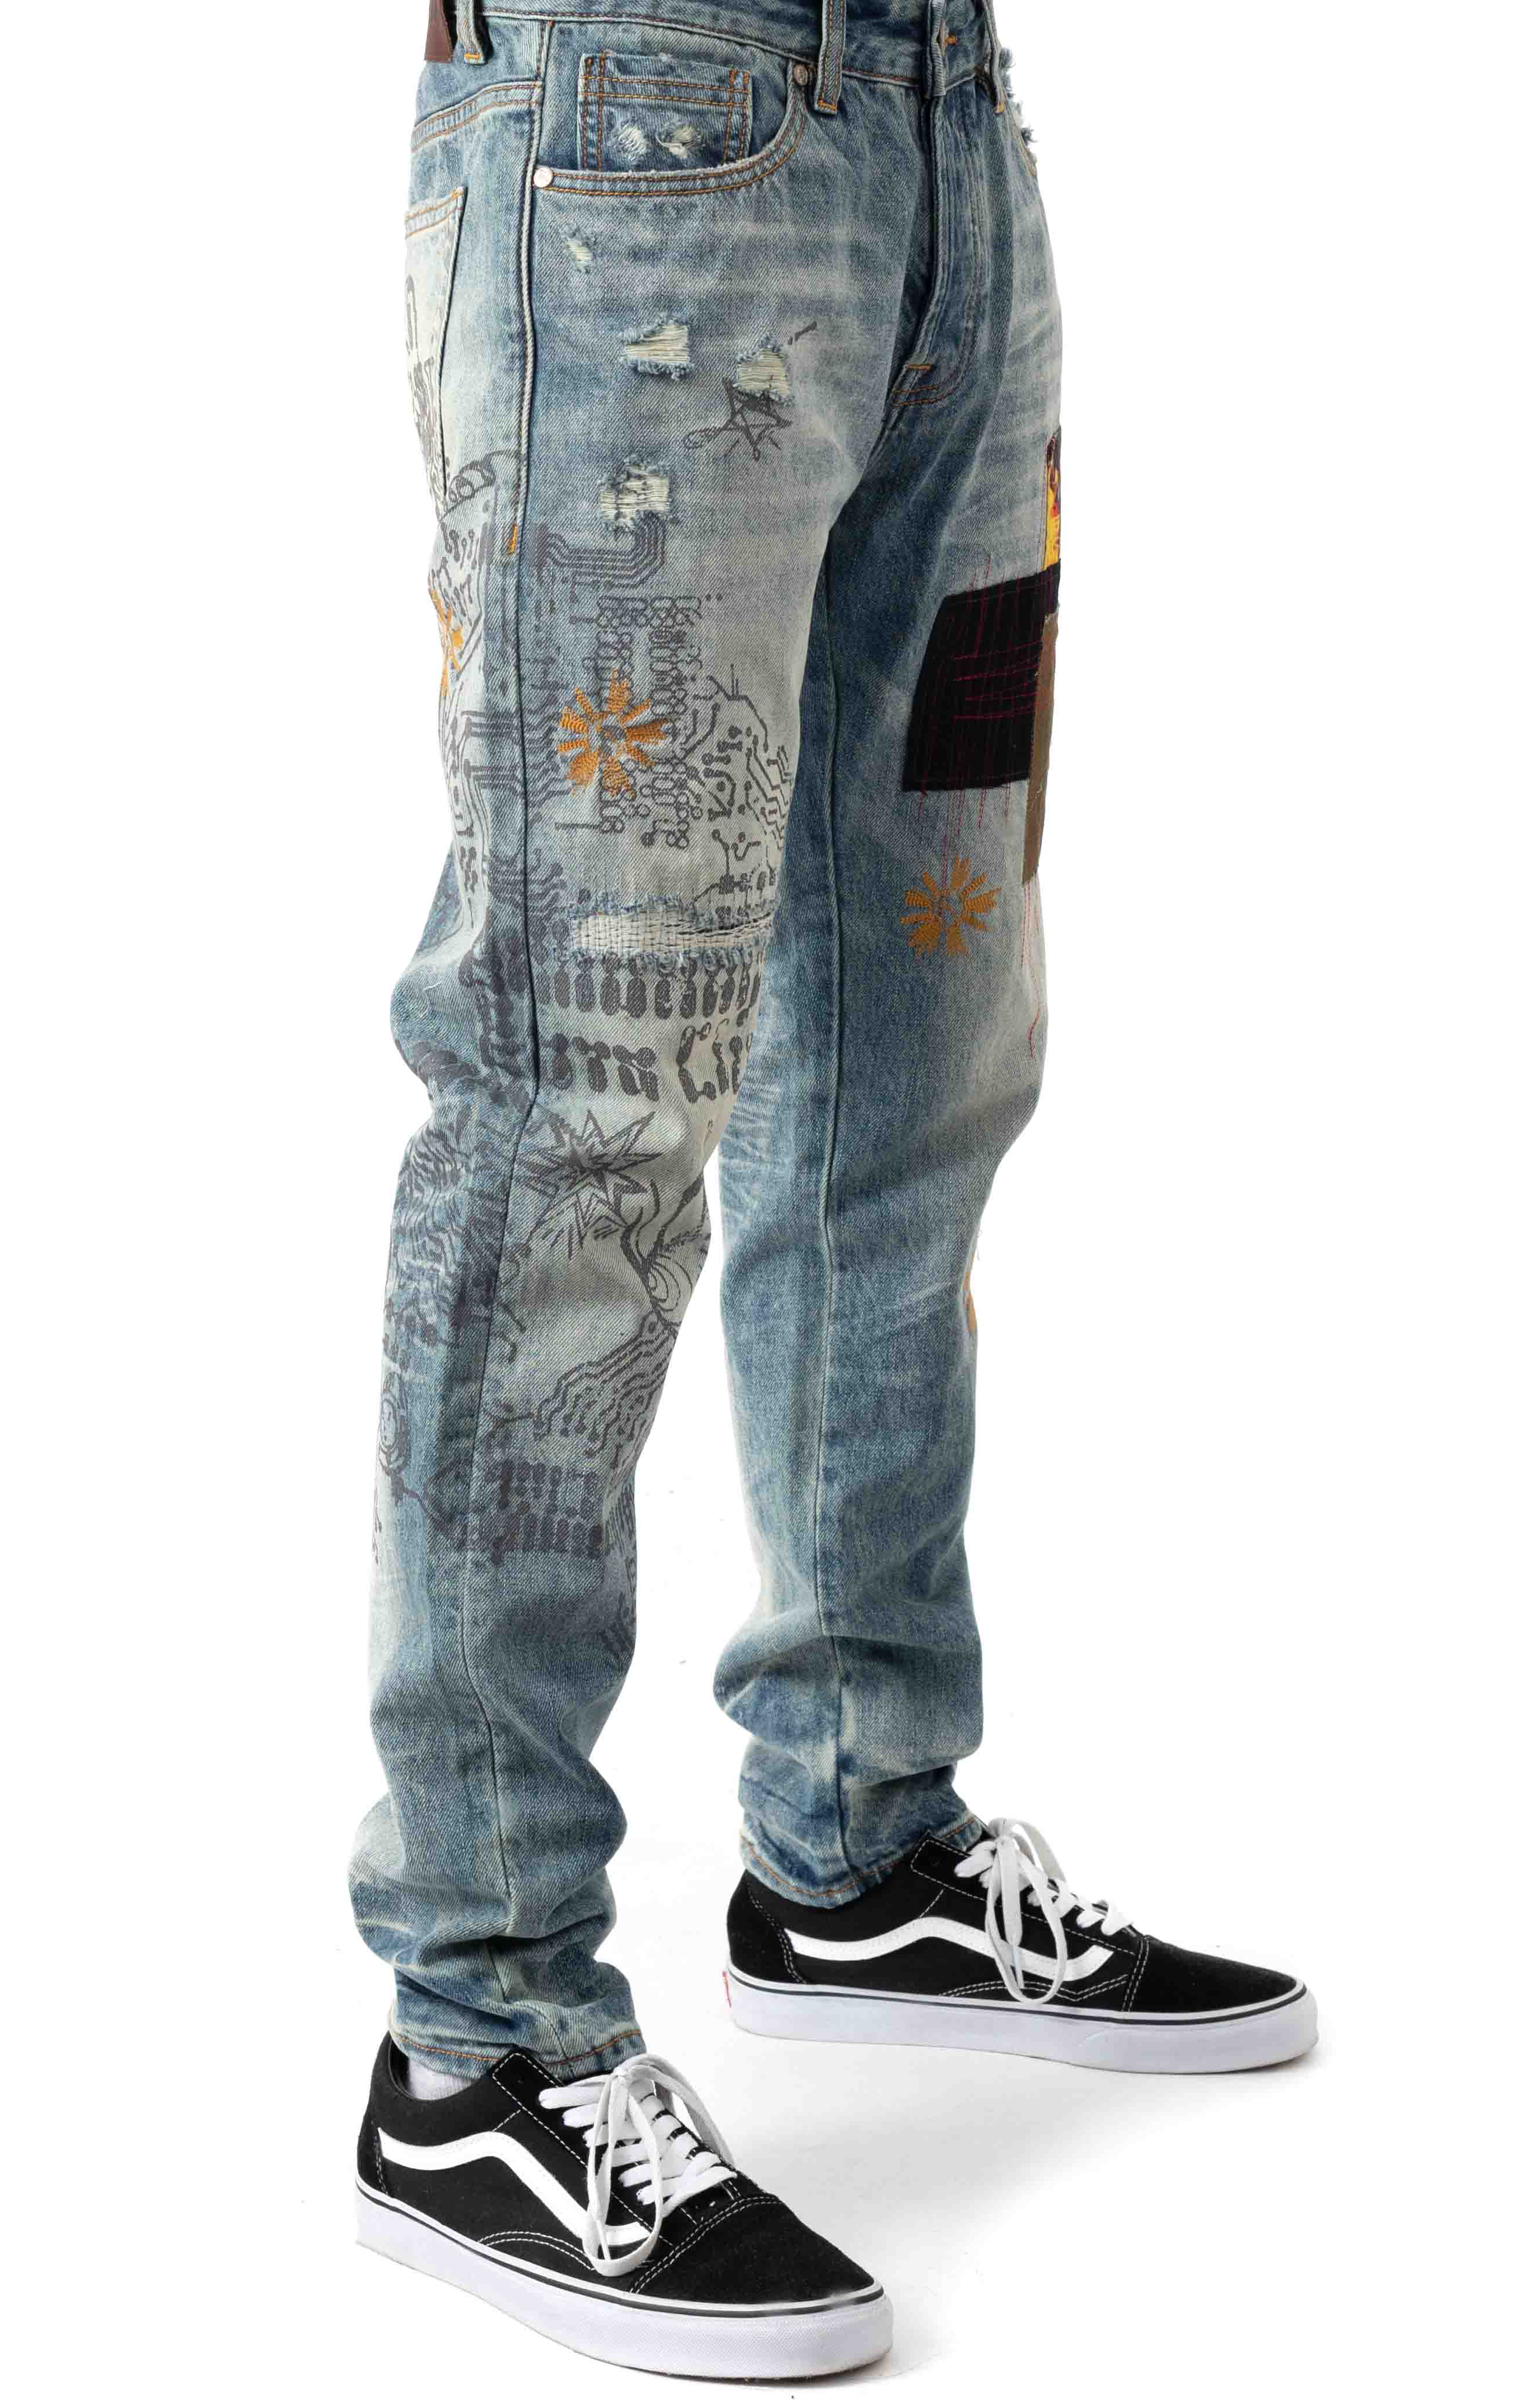 BB Circuits Jeans - Helix  2